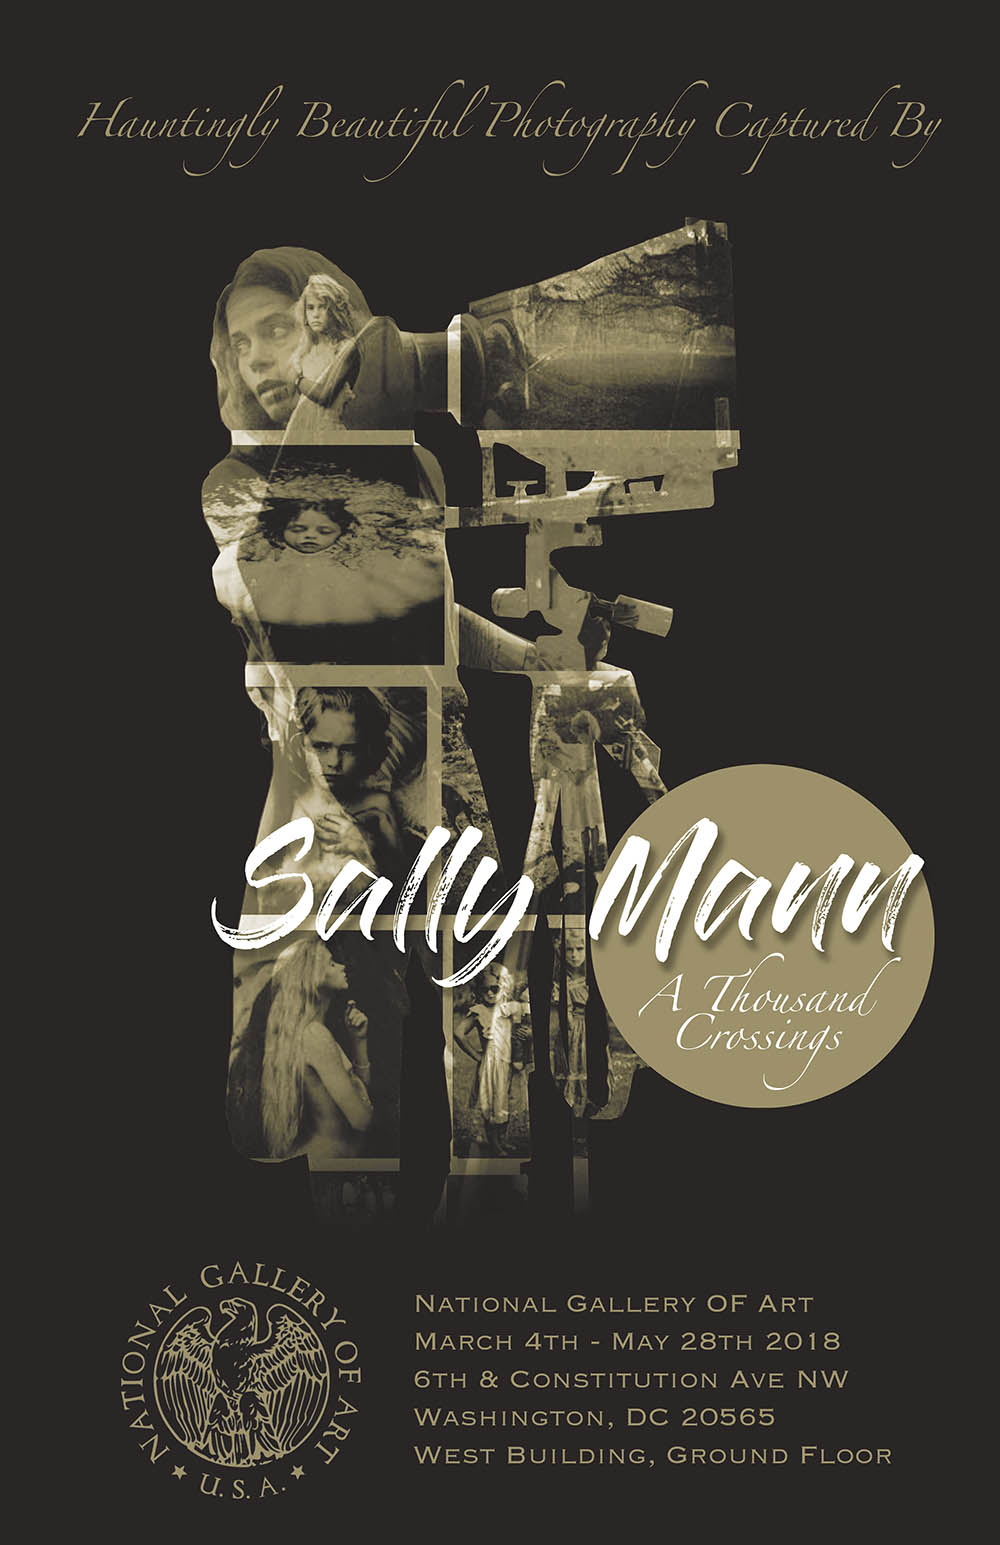 Eve Van Kampen's Sally Mann A Thousand Crossings Poster